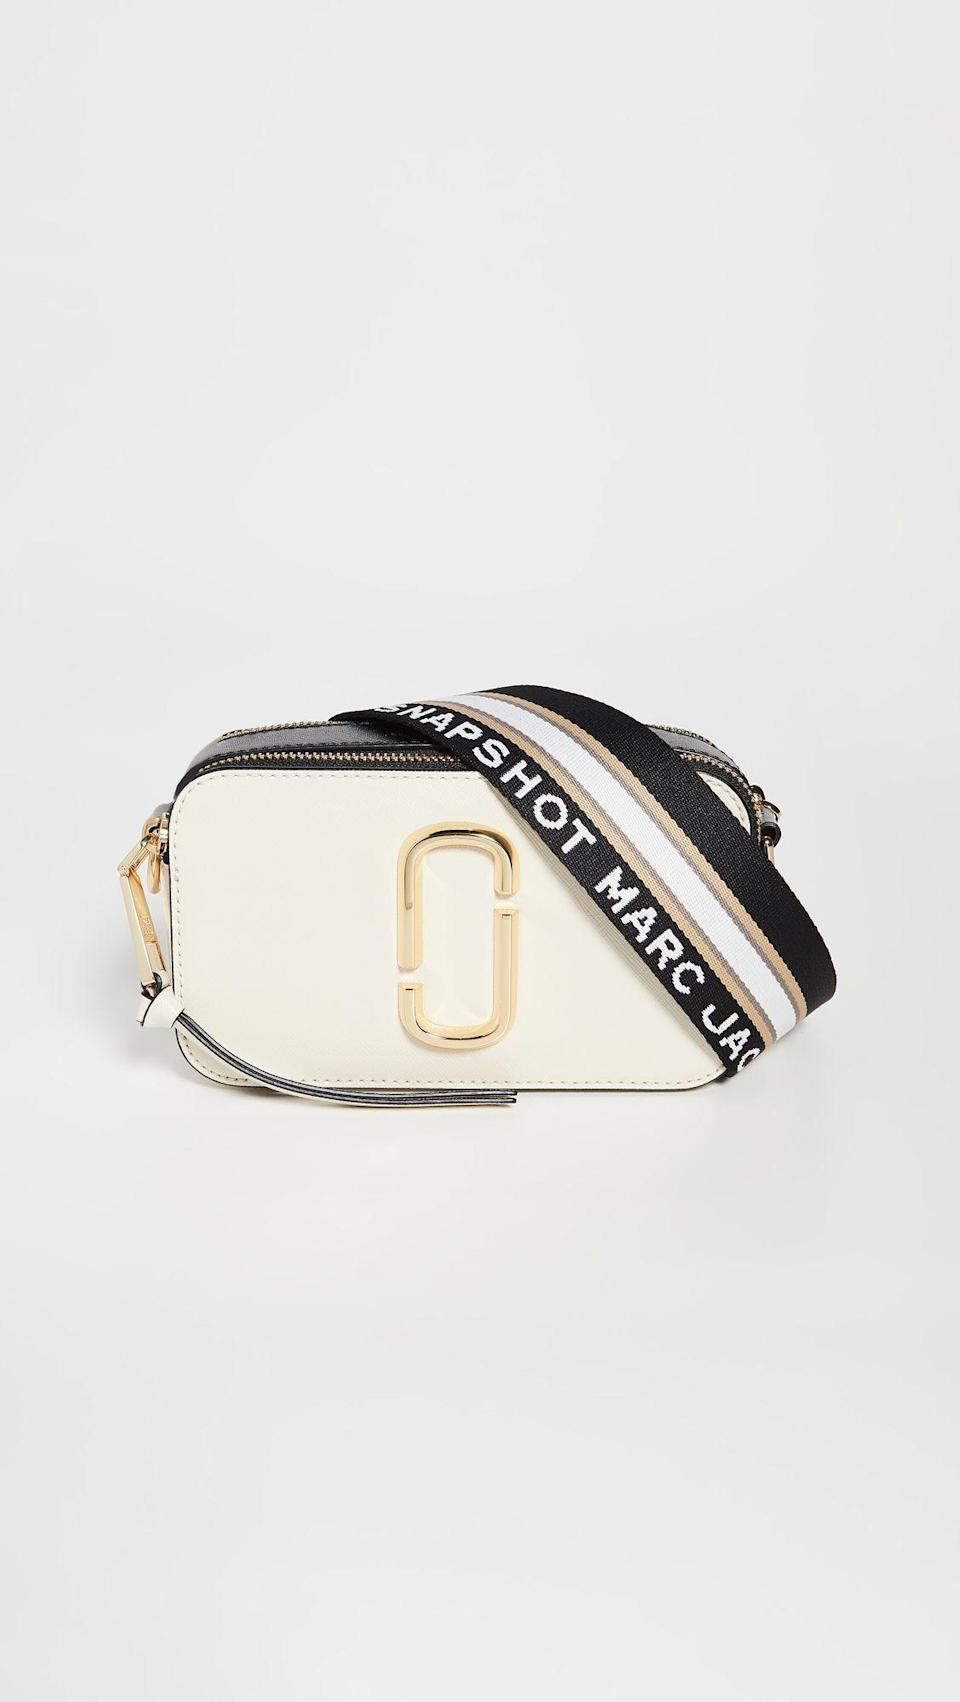 """<p><strong>The Marc Jacobs</strong></p><p>shopbop.com</p><p><strong>$295.00</strong></p><p><a href=""""https://go.redirectingat.com?id=74968X1596630&url=https%3A%2F%2Fwww.shopbop.com%2Fsnapshot-camera-bag-marc-jacobs%2Fvp%2Fv%3D1%2F1524043672.htm&sref=https%3A%2F%2Fwww.seventeen.com%2Flife%2Ffriends-family%2Fg722%2Fbest-holiday-gifts-for-mom%2F"""" rel=""""nofollow noopener"""" target=""""_blank"""" data-ylk=""""slk:Shop Now"""" class=""""link rapid-noclick-resp"""">Shop Now</a></p><p>Between the subtle logo, classic color, and simplistic shape, this baby will match every item in mom's closet. Incidentally, it'll also look cute with everything you own. What a coincidence!</p>"""